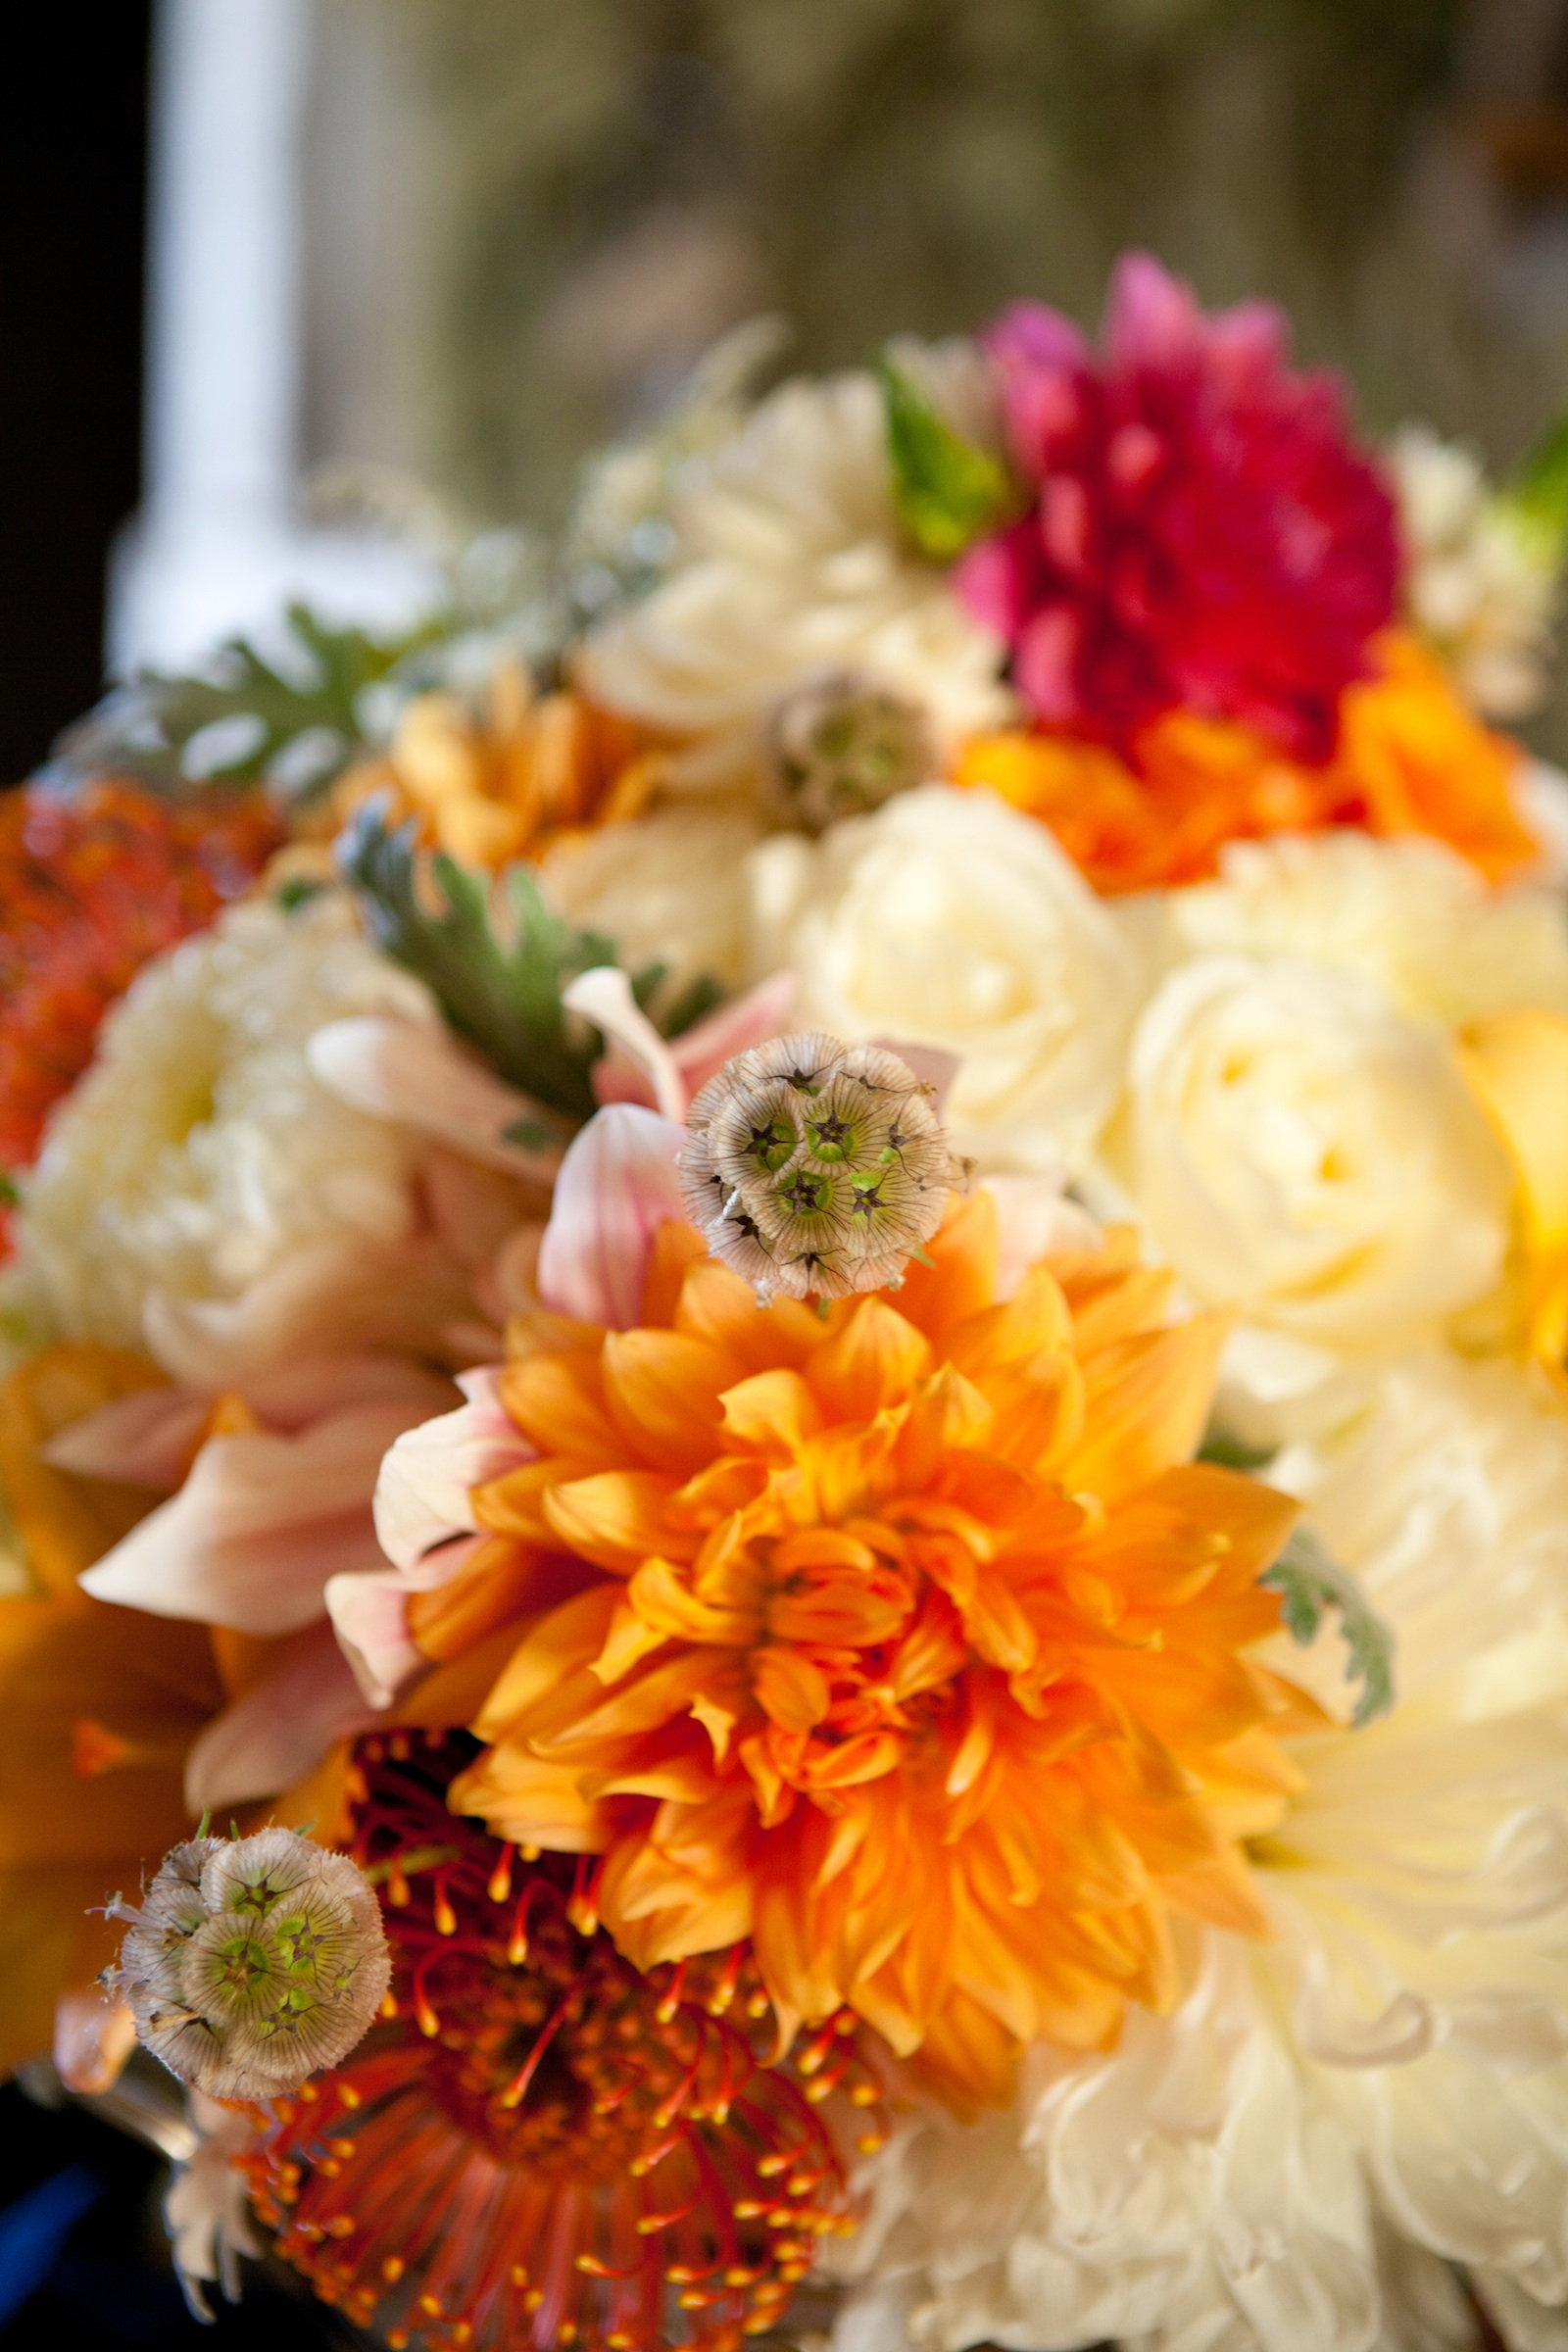 Kentucky-derby-inspired-wedding-theme-bridal-shower-inspiration-orange-ivory-centerpieces.original